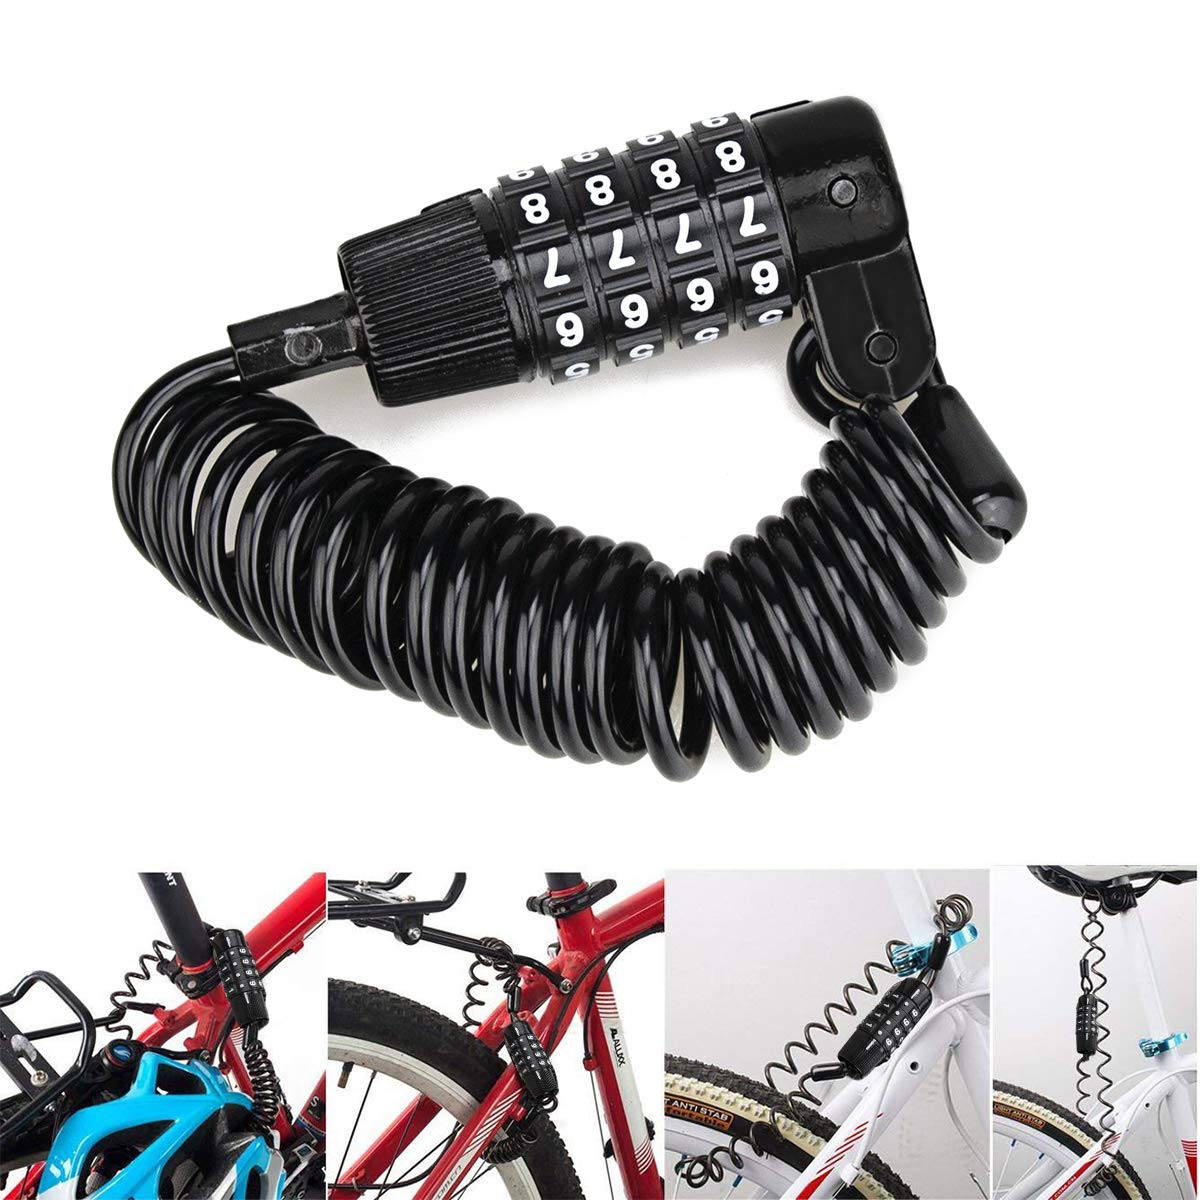 Allnice Bike Lock Cable Mini Portable Anti-Theft Resettable 4 Digit Bike Bicycle Cycling Spring Combination Cable Lock Senior Travel Luggage Locks Helmet Lock